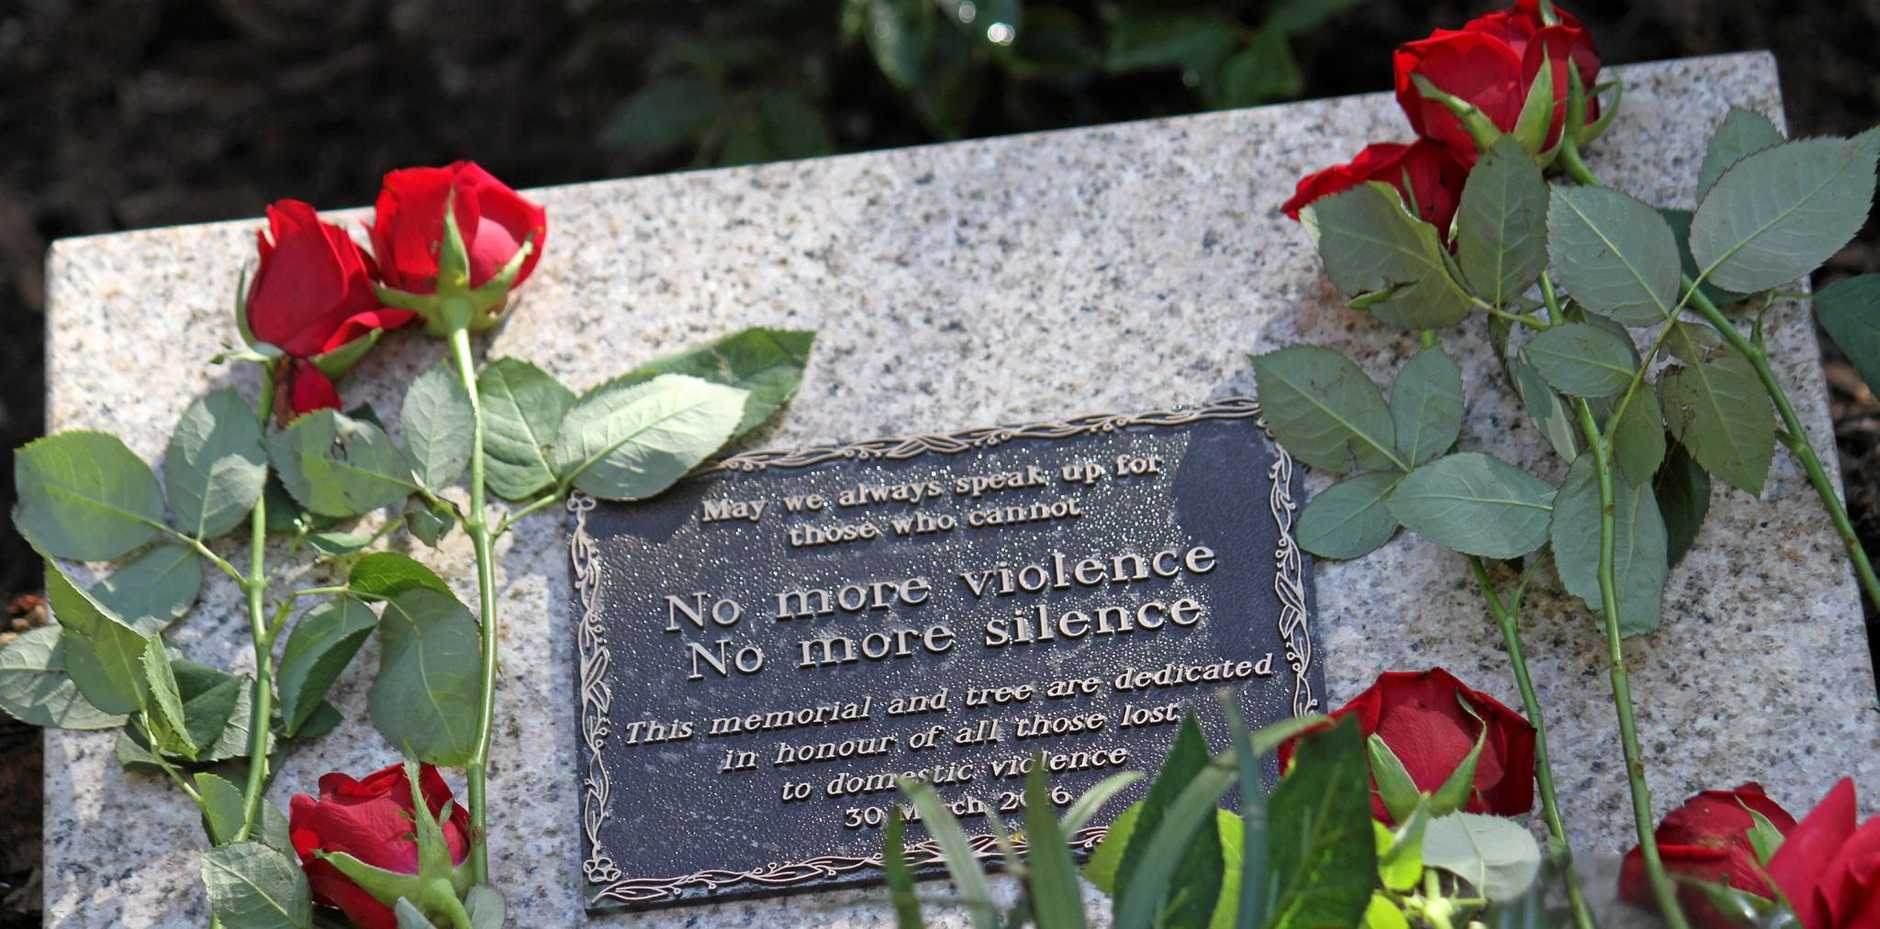 Front-line domestic violence workers believe more than 65 Australian women have lost their lives as a result of intimate partner or family violence this year.